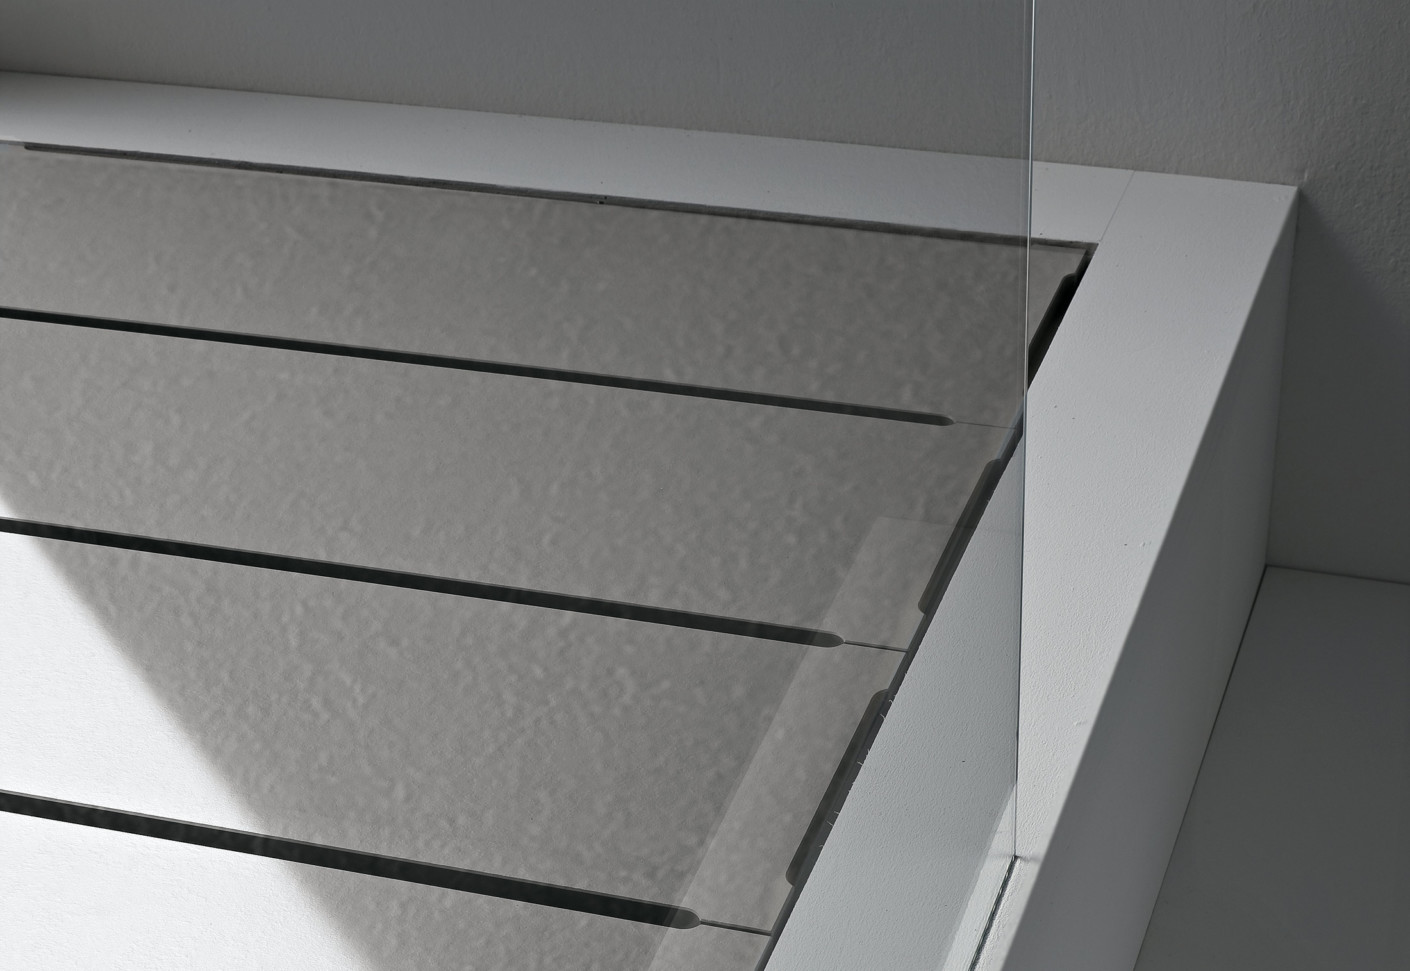 Top Cover For Bathroom Tub